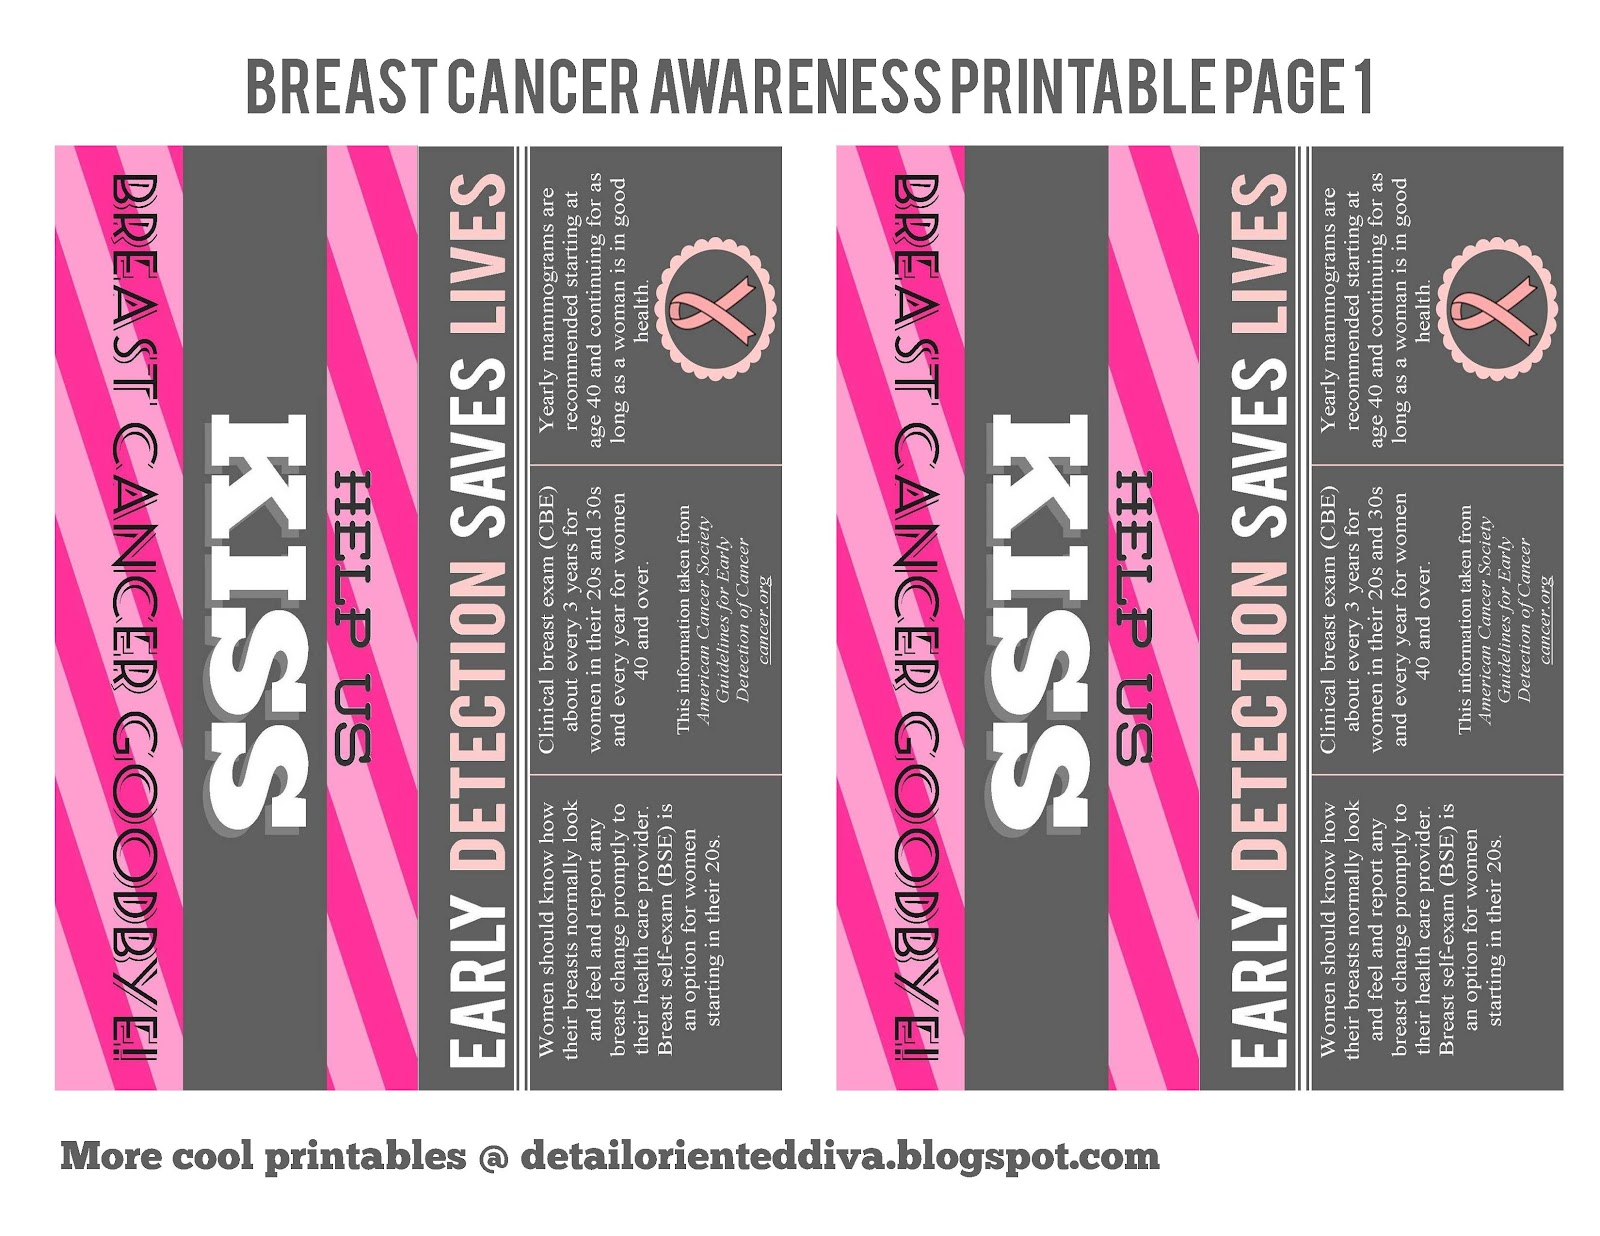 Breast Cancer Cards Printable http://oneshetwoshe.com/2012/09/breast-cancer-awareness-printables-she-natalie.html